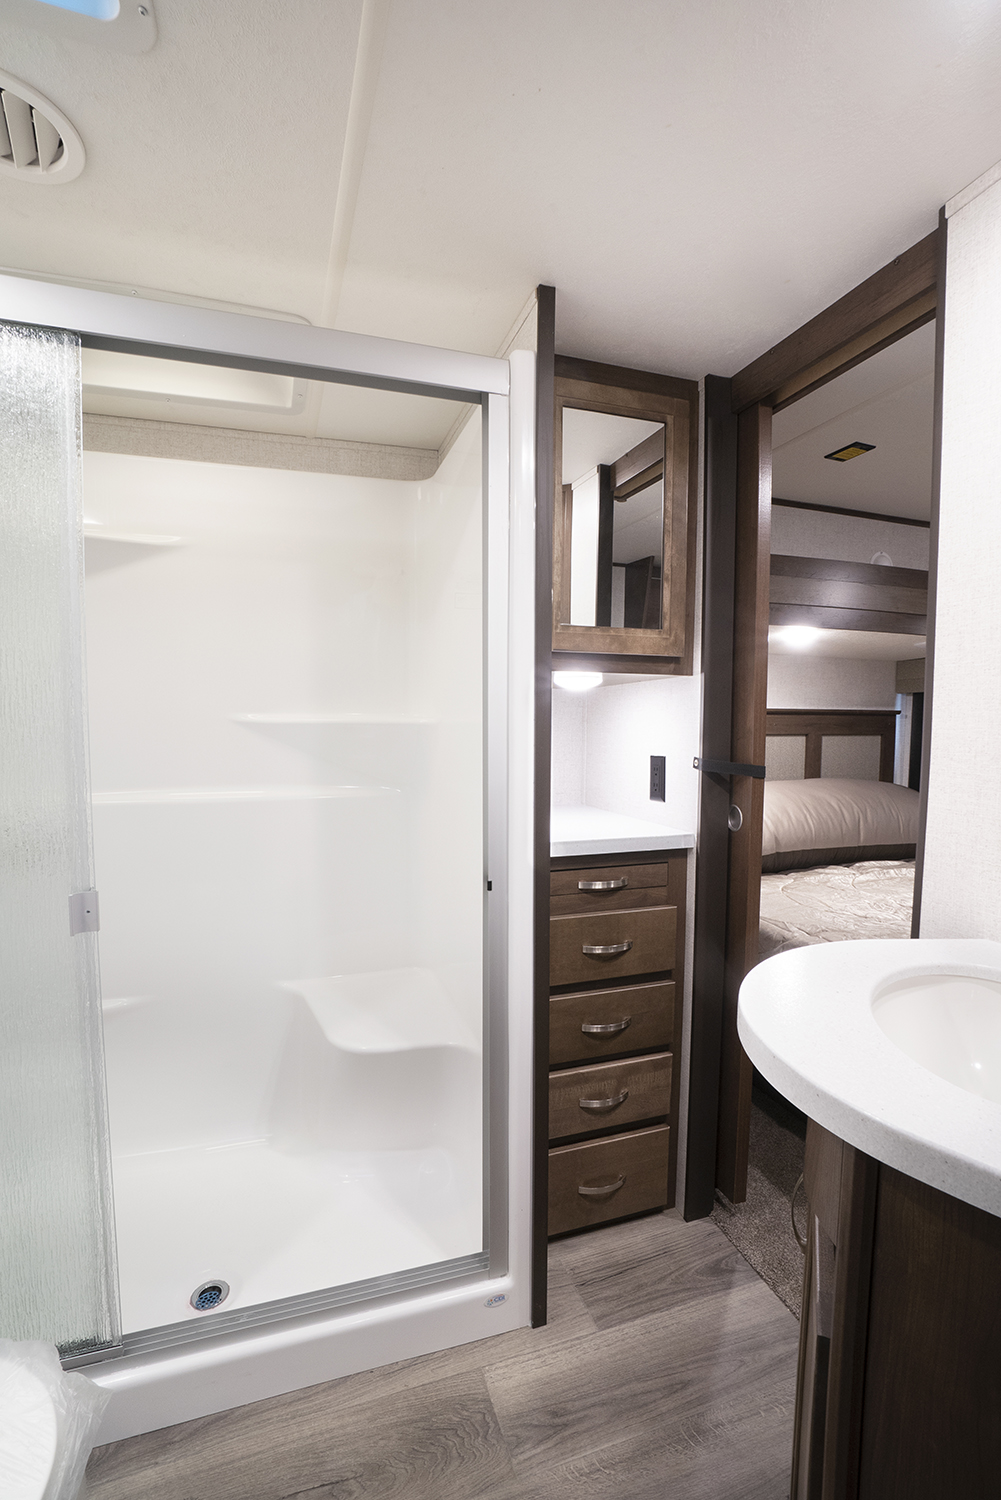 2018 Open Range Standards And Options by Highland Ridge RV